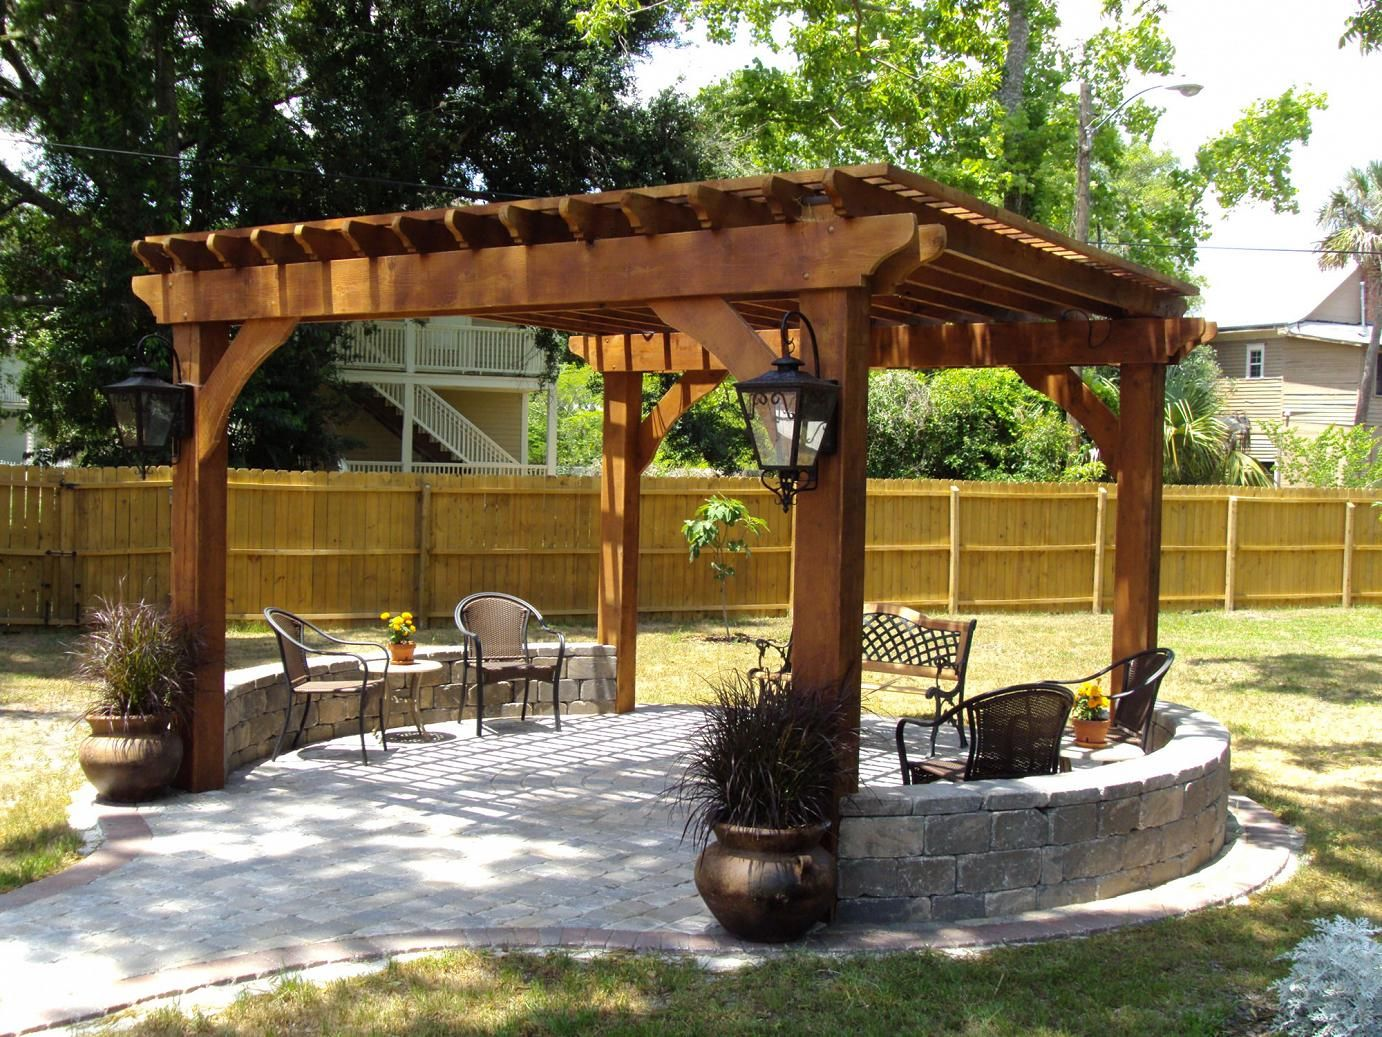 Outdoor Pergolas-Corpus Christi TX Landscape Designs & Outdoor Living Areas-We offer Landscape Design, Outdoor Patios & Pergolas, Outdoor Living Spaces, Stonescapes, Residential & Commercial Landscaping, Irrigation Installation & Repairs, Drainage Systems, Landscape Lighting, Outdoor Living Spaces, Tree Service, Lawn Service, and more.